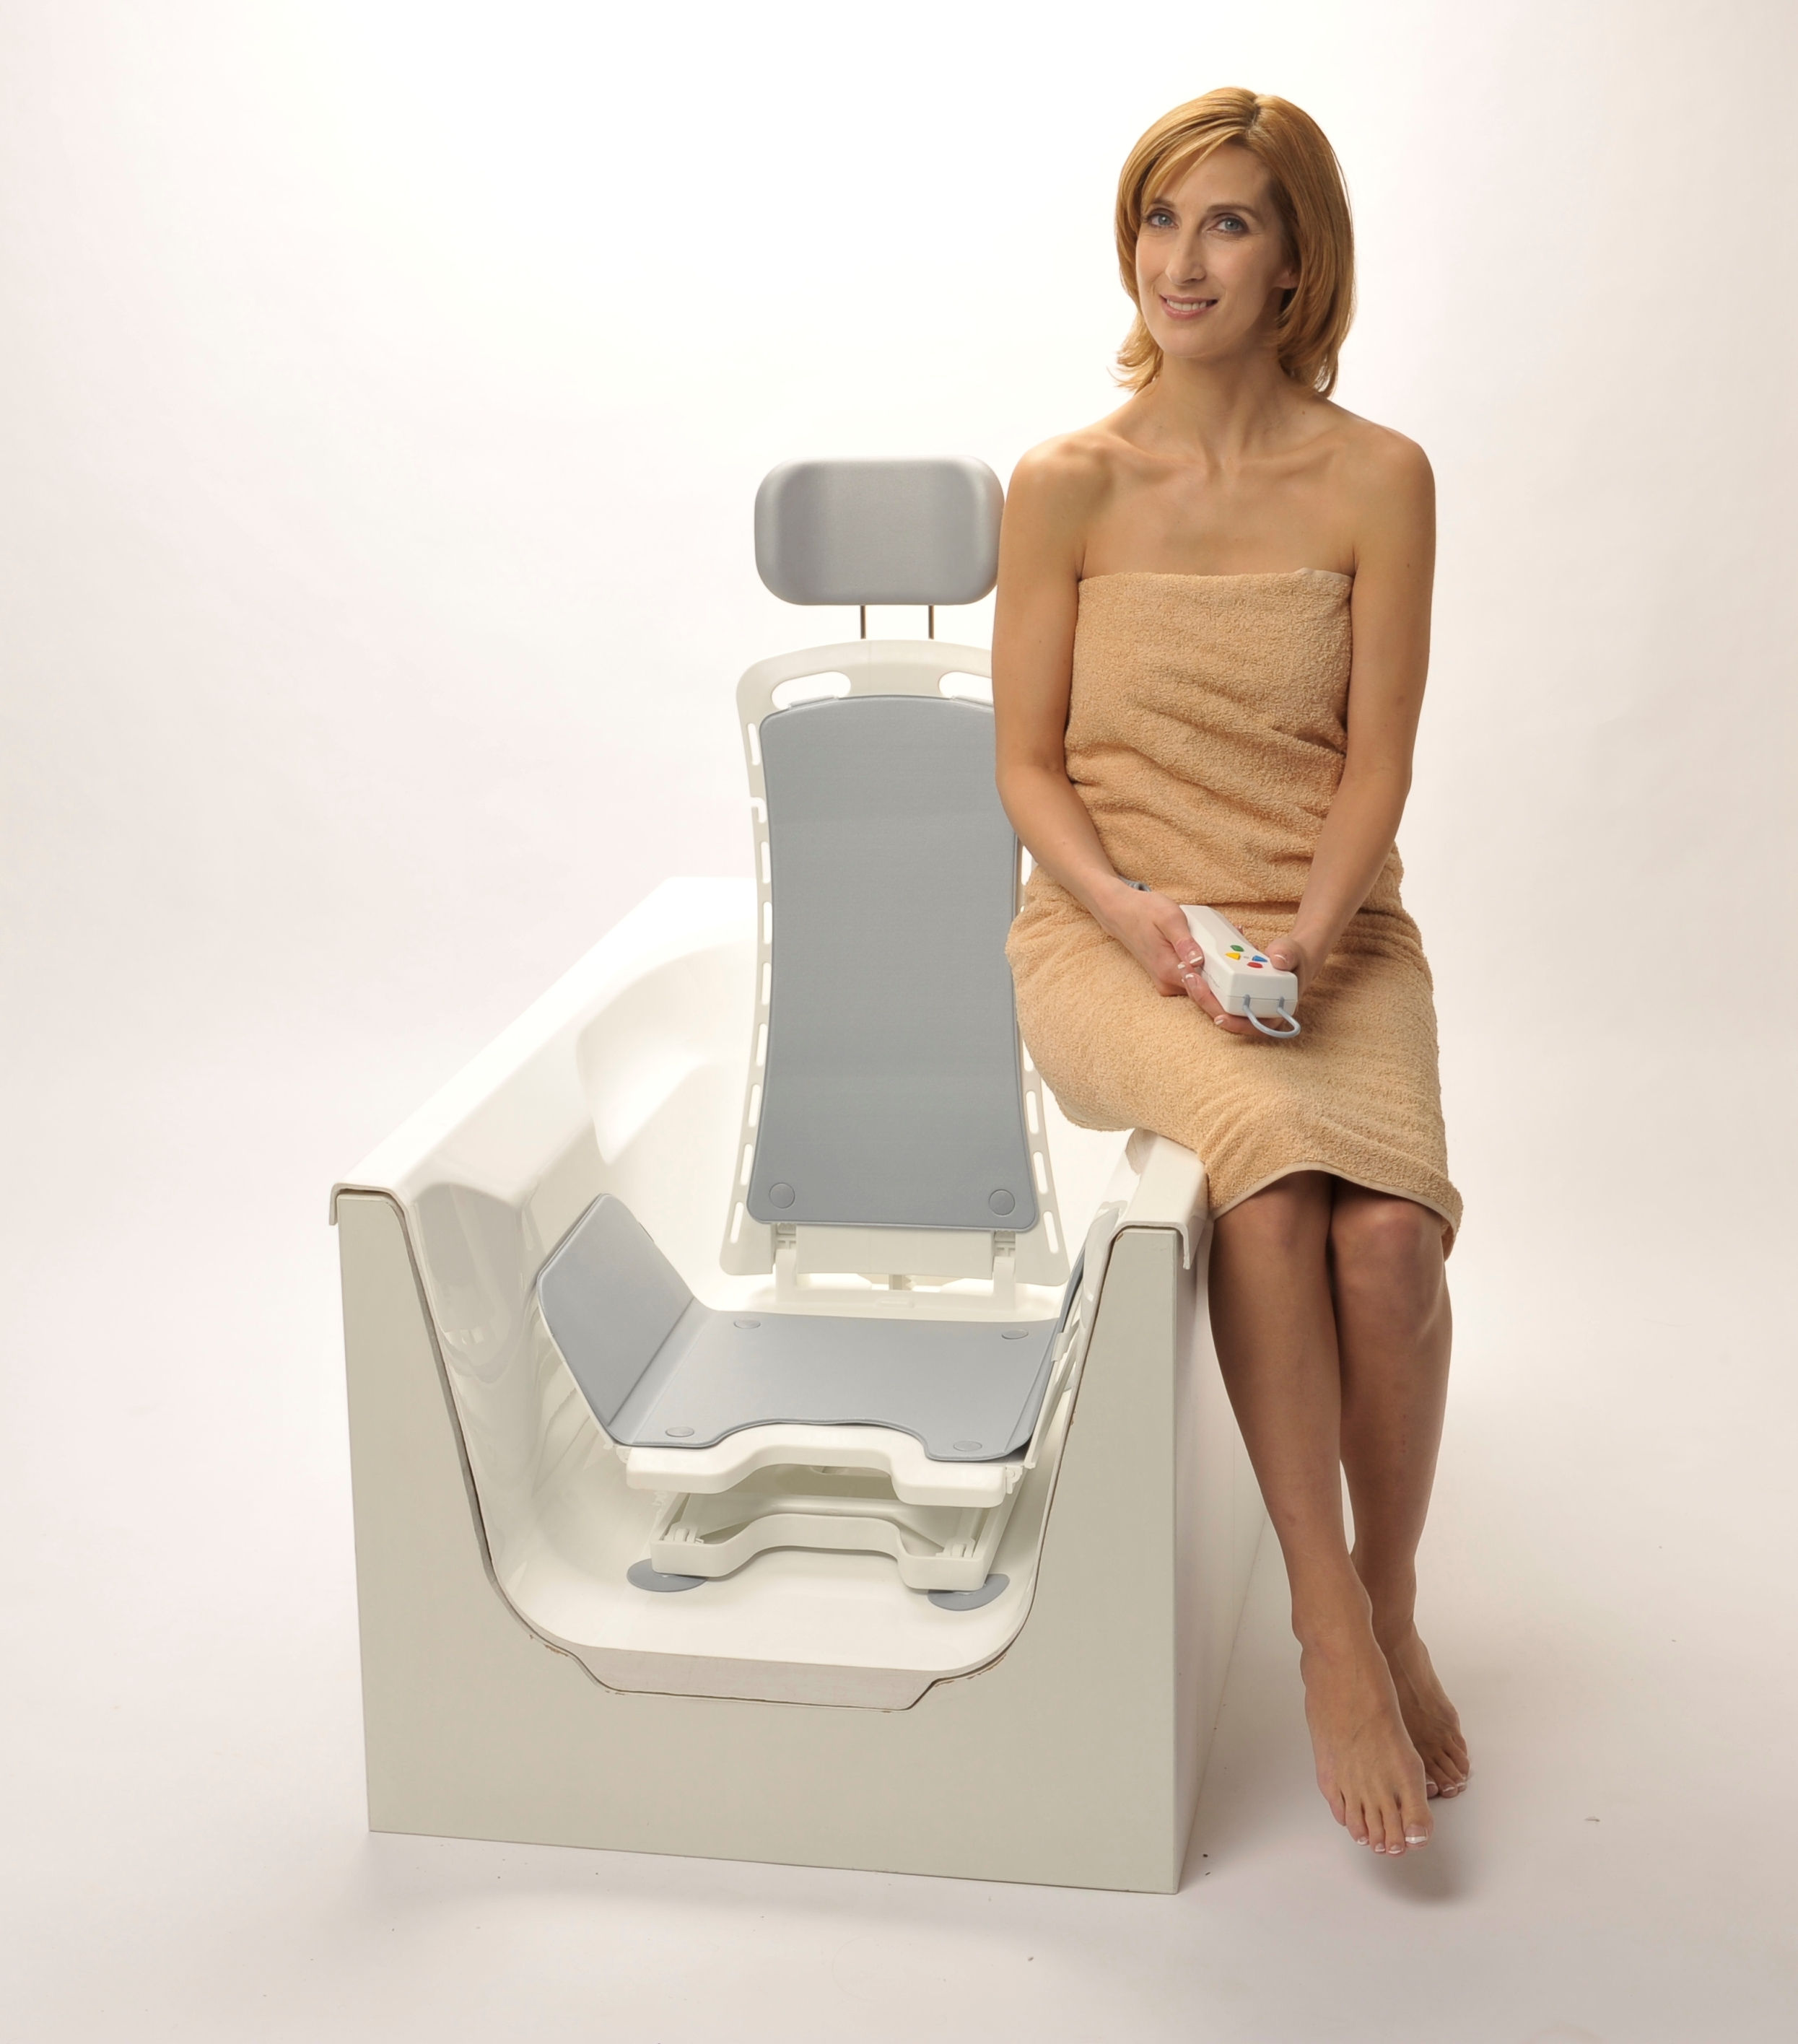 Bathtub Chair Lifts bellavita auto bath tub chair seat lift 477200432 drive medical  sc 1 st  Home Interior Design : bathtub chair lifts - Cheerinfomania.Com